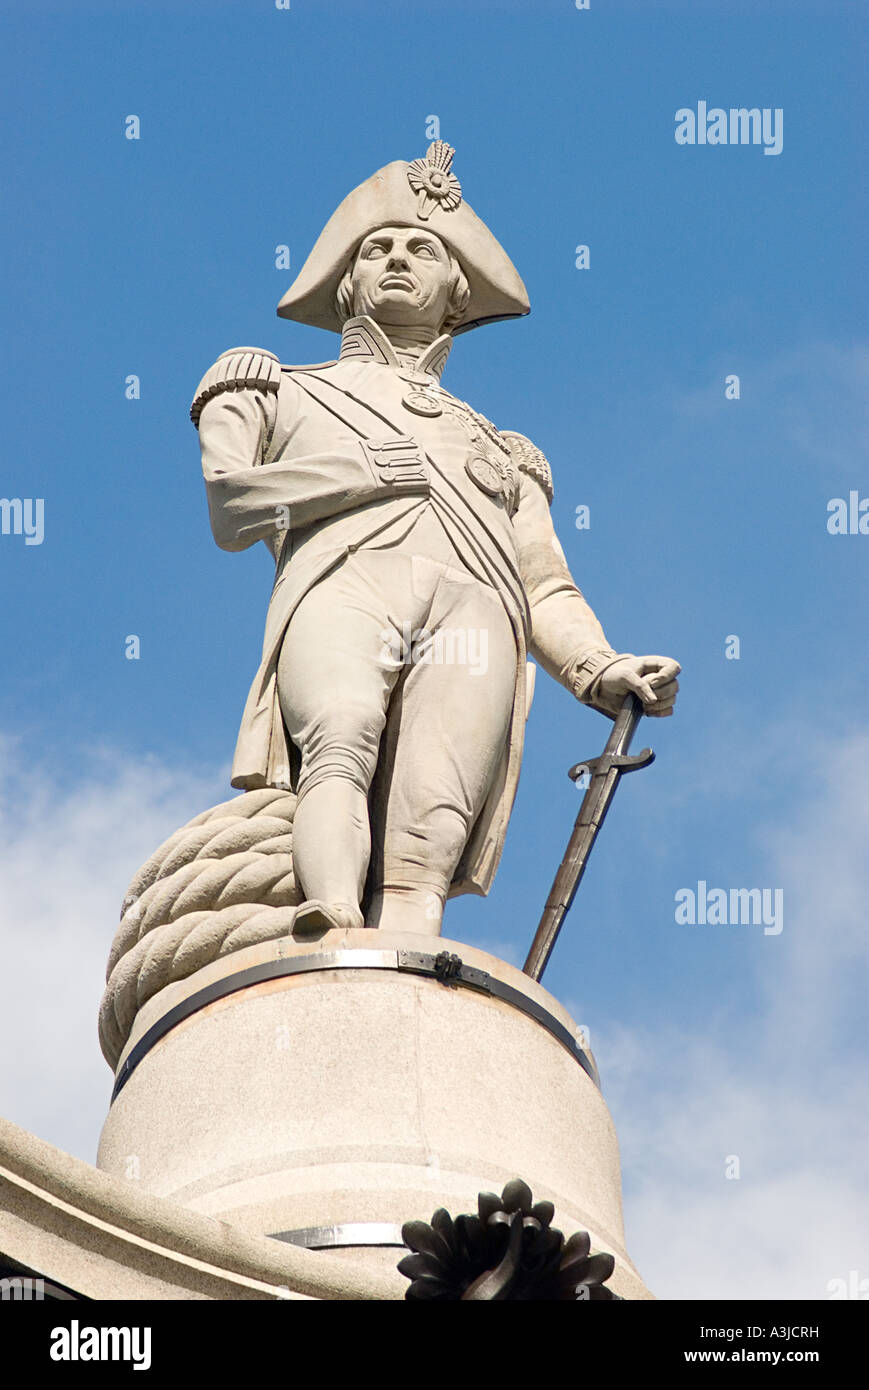 Statue of admiral nelson - Stock Image